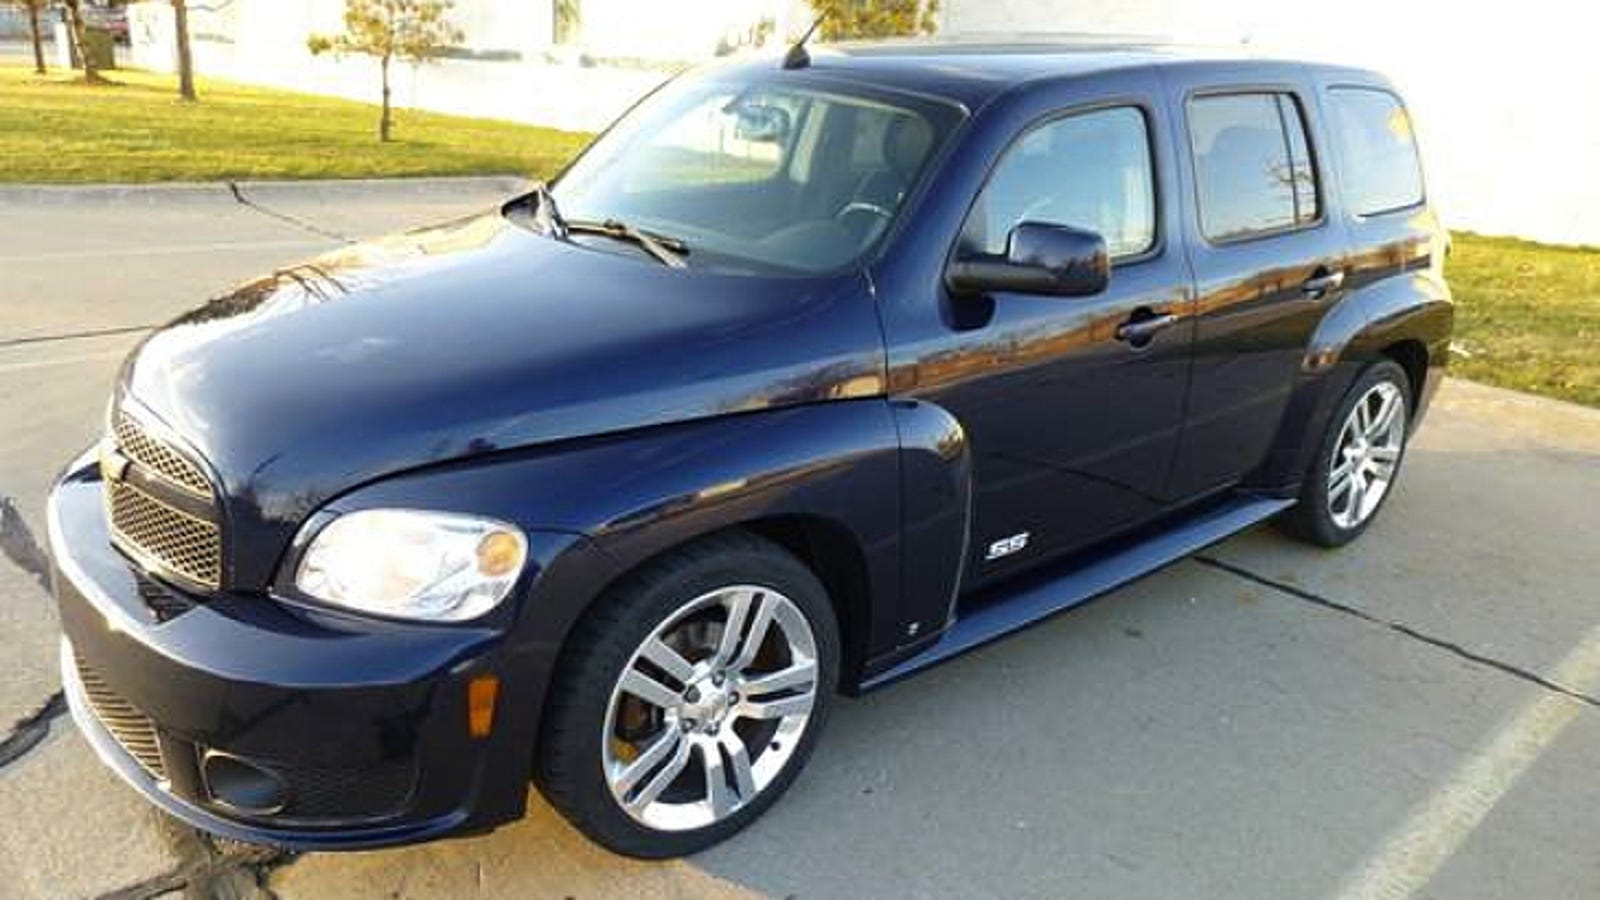 BMW Driving School >> For $7,900, This 2008 Chevy HHR SS Could Be Your Retro Rocket - No Really